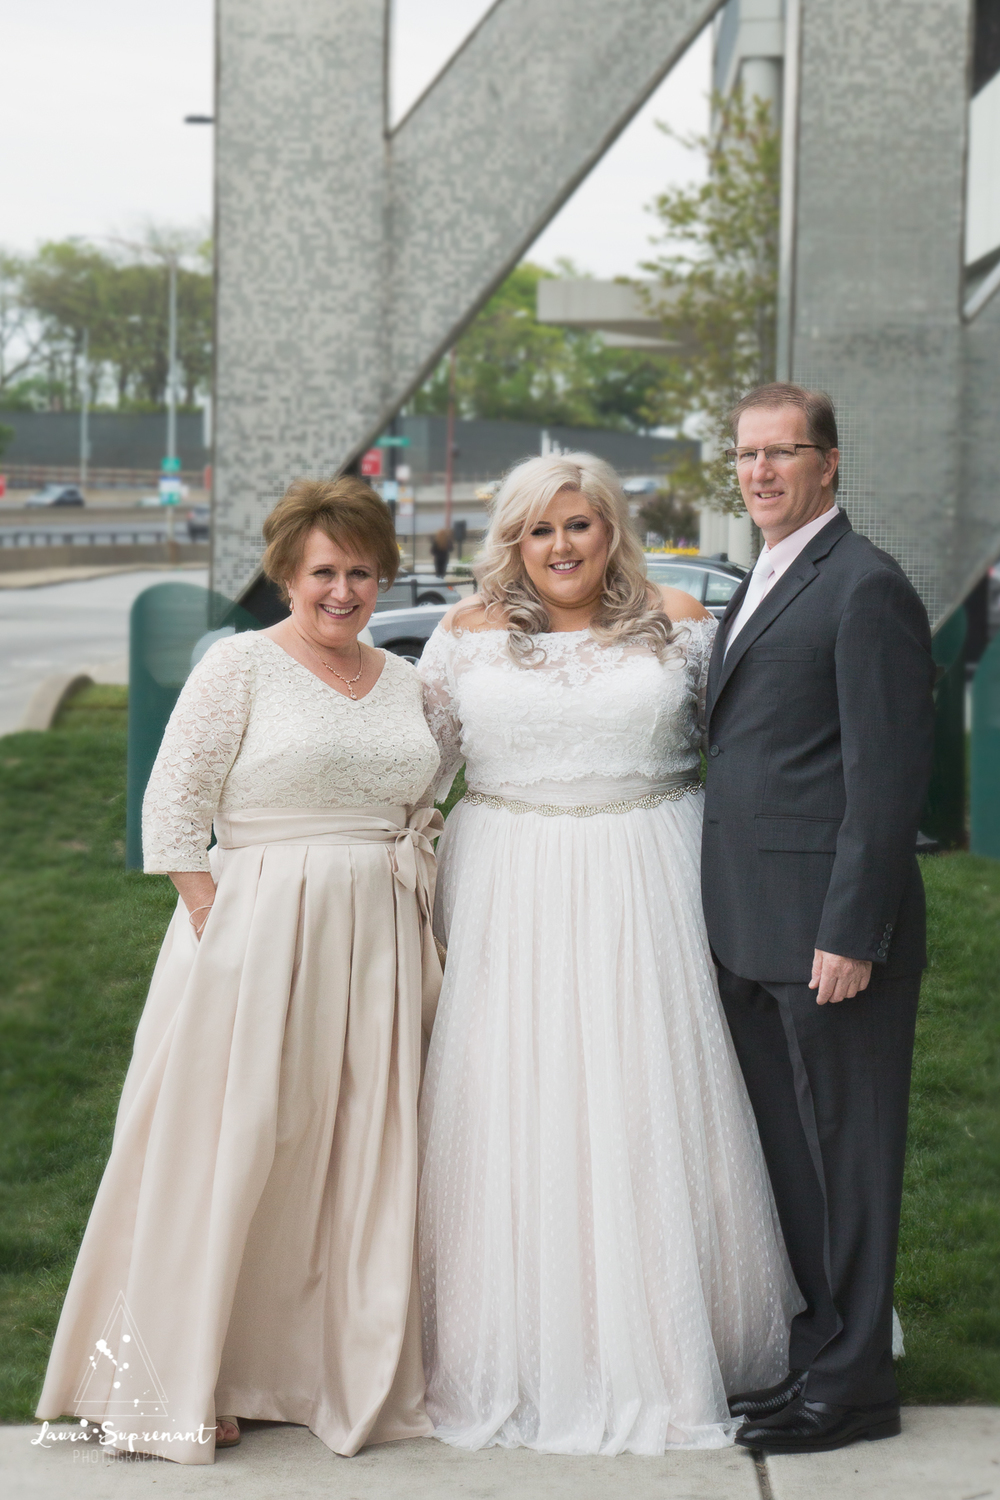 wedding_photography_chicago_wrigley_field_ravenswood_event_center_laura_suprenant (7 of 82).jpg